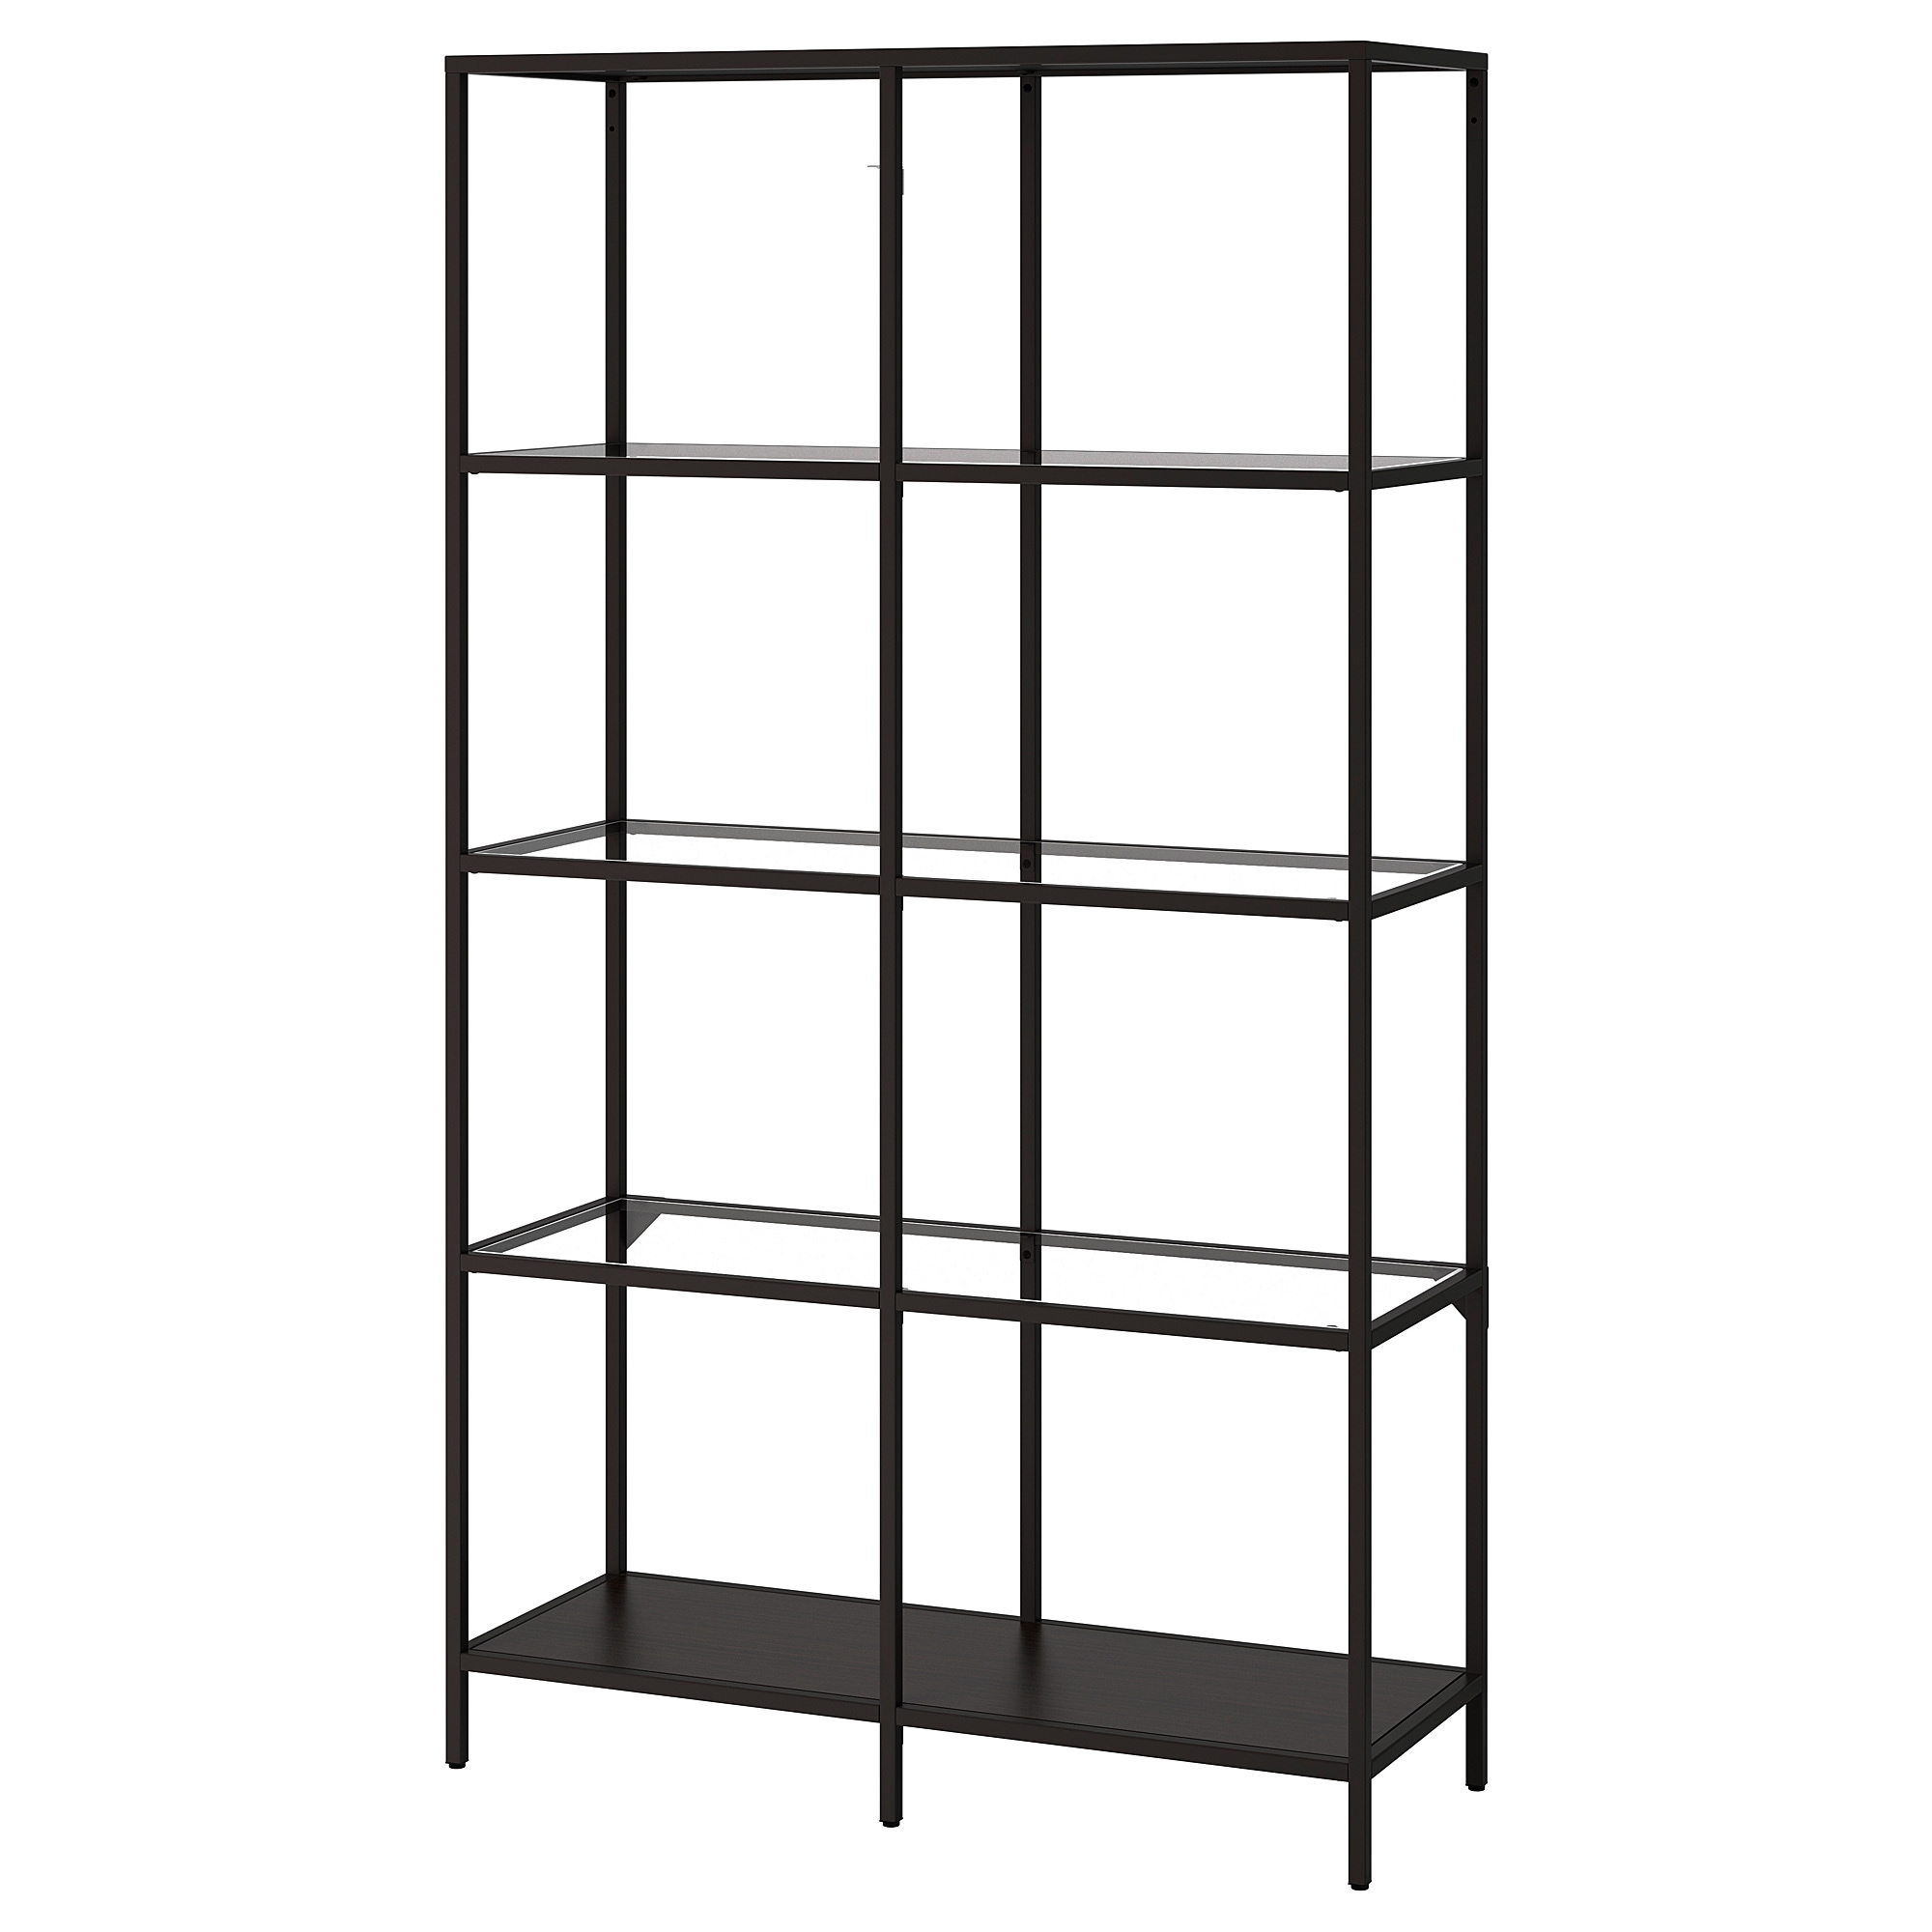 vittsjÖ shelf unit - black-brown/glass - ikea